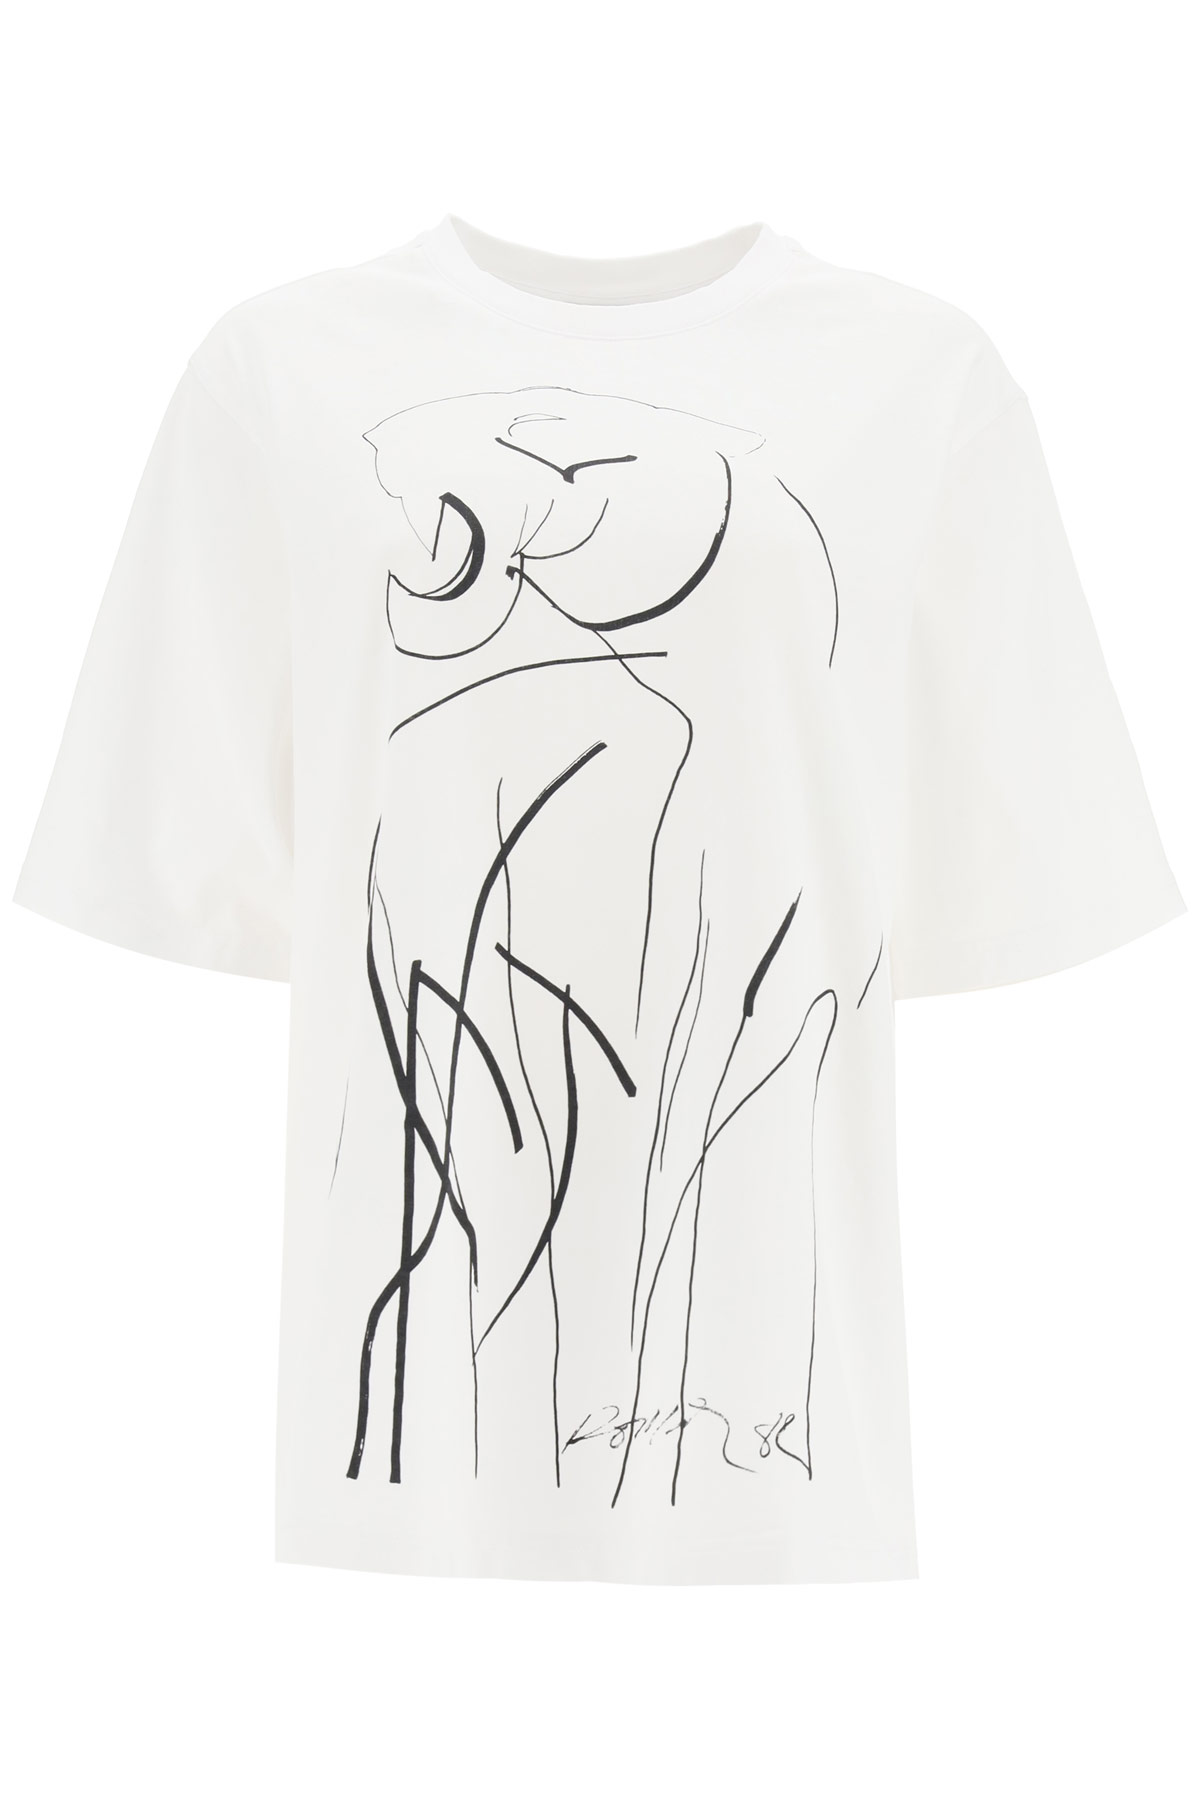 KENZO TIGER OVERSIZED T-SHIRT S White, Black Cotton